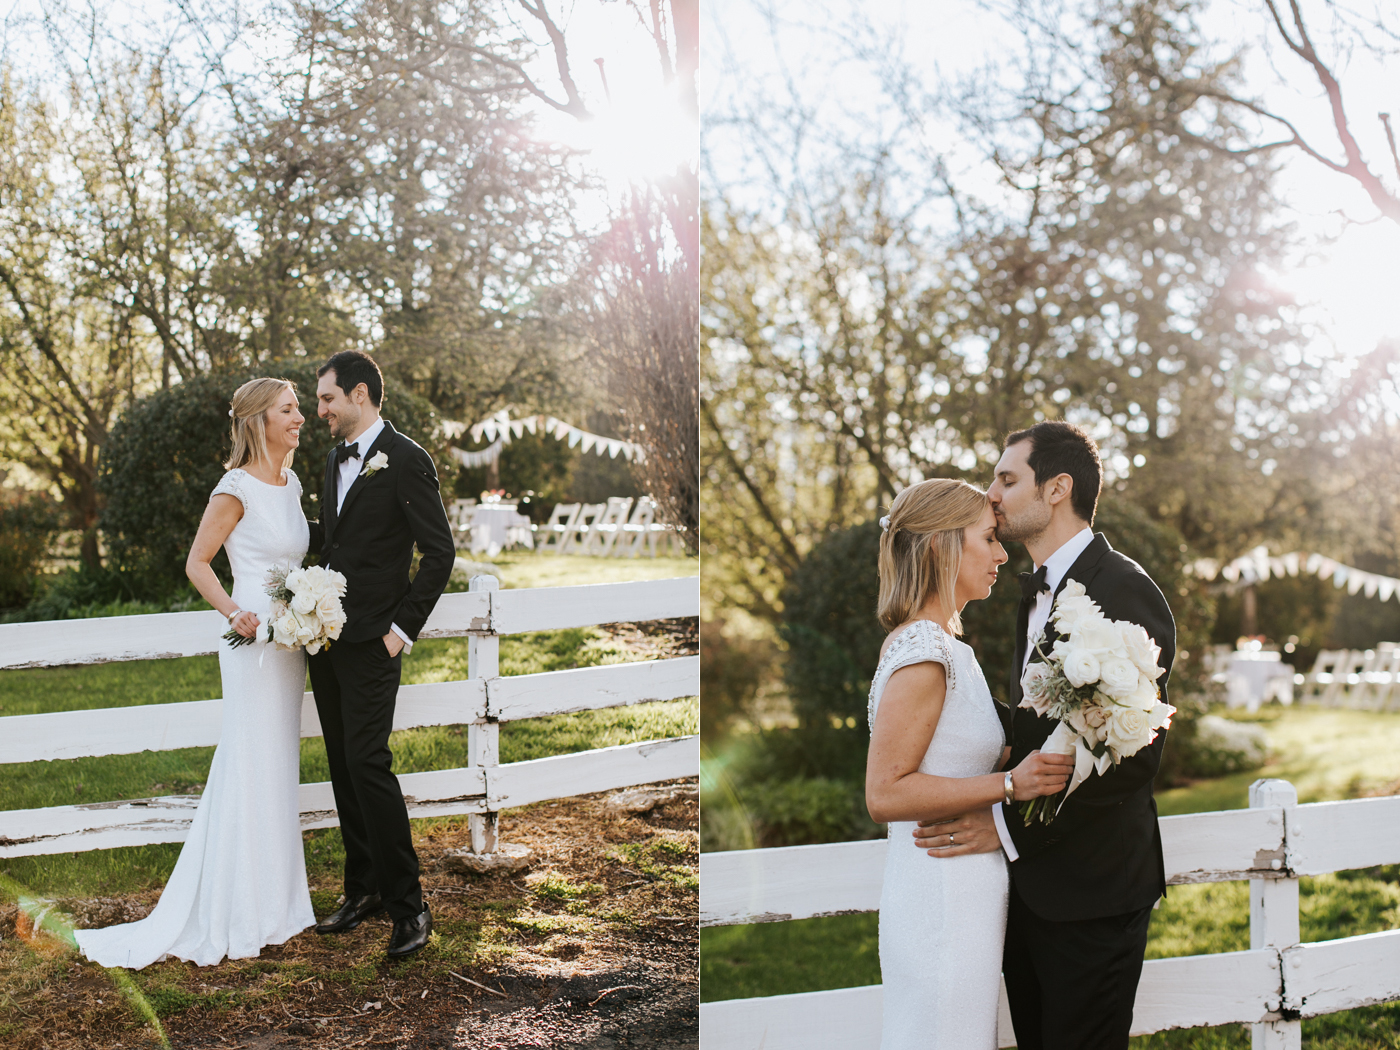 Bridget & James - Orange Country Wedding - Samantha Heather Photography-123.jpg